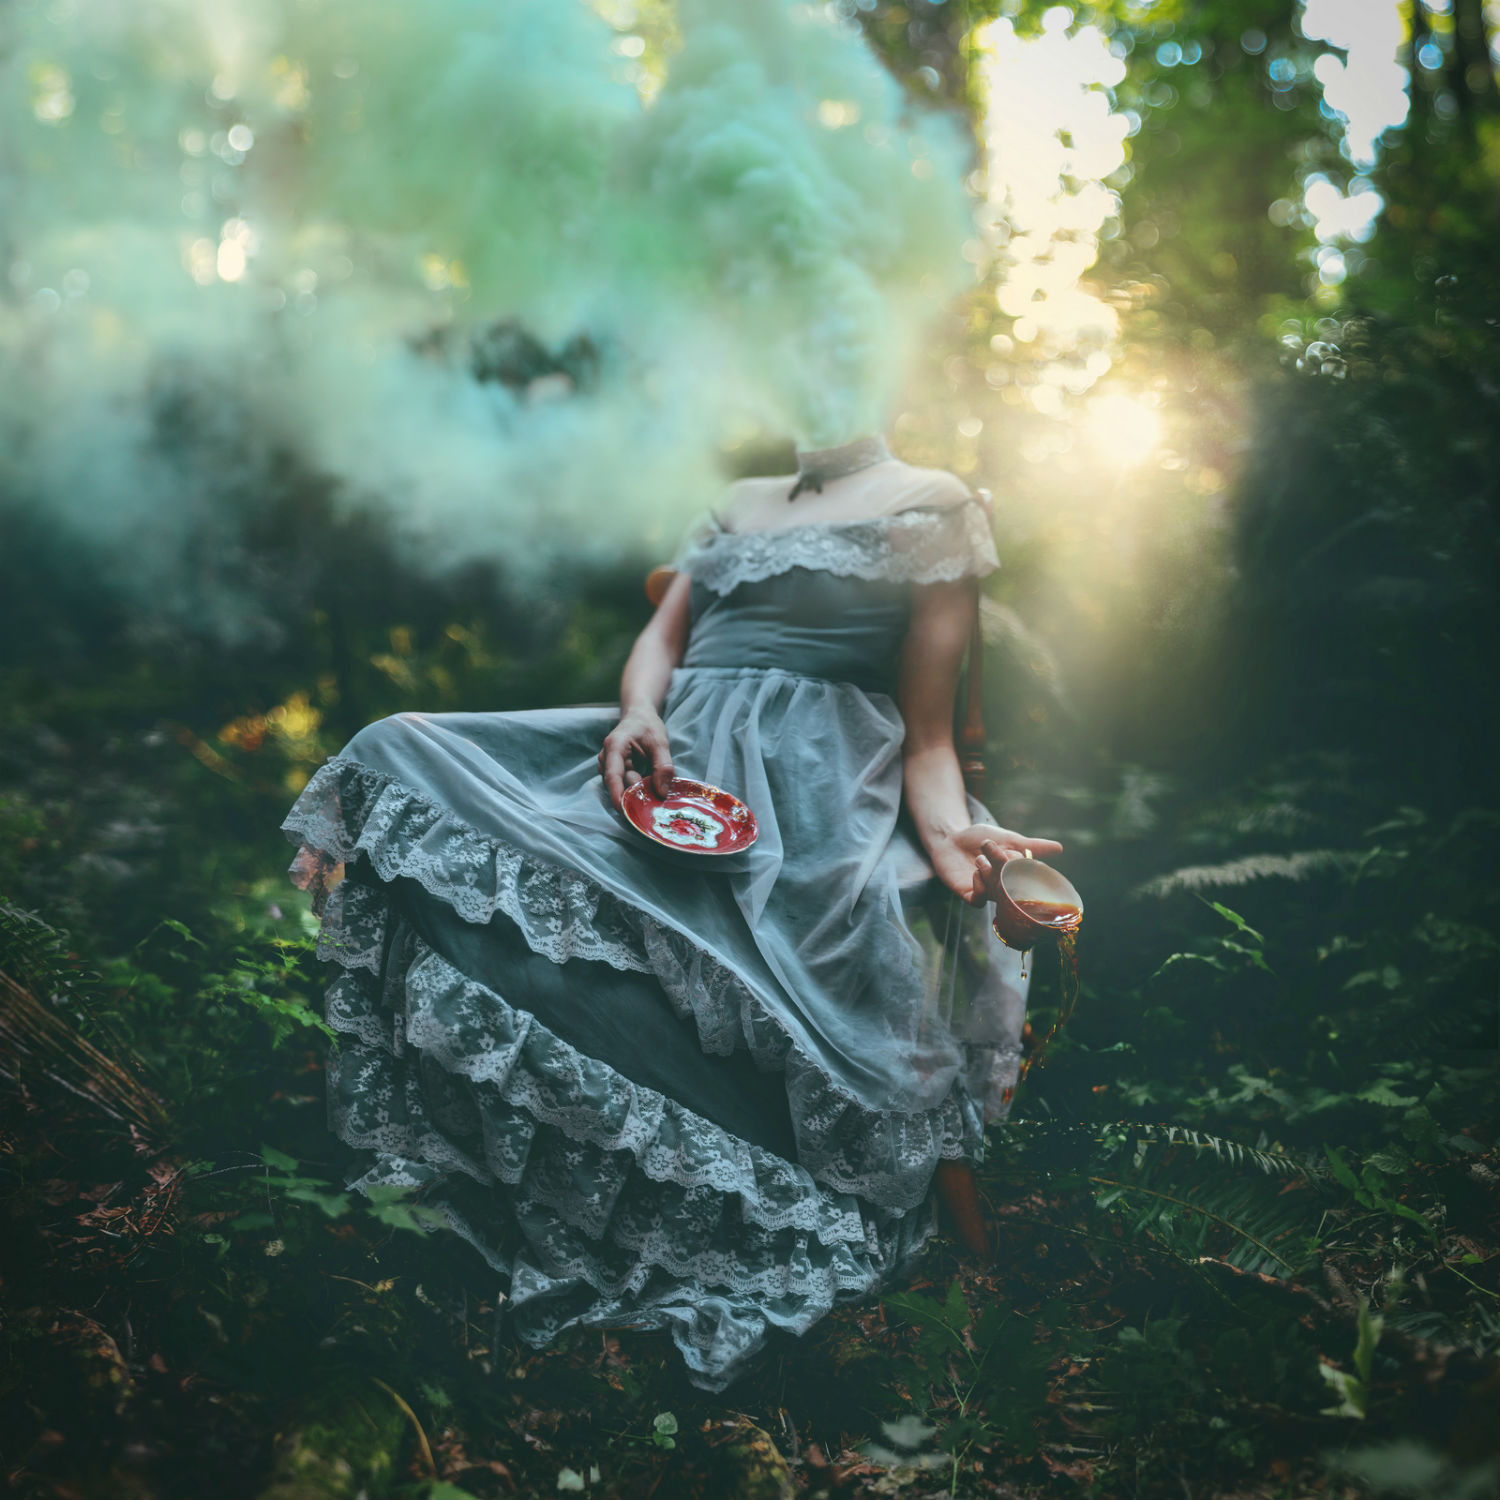 kindra nikole photography surrealism colour fashion model nature